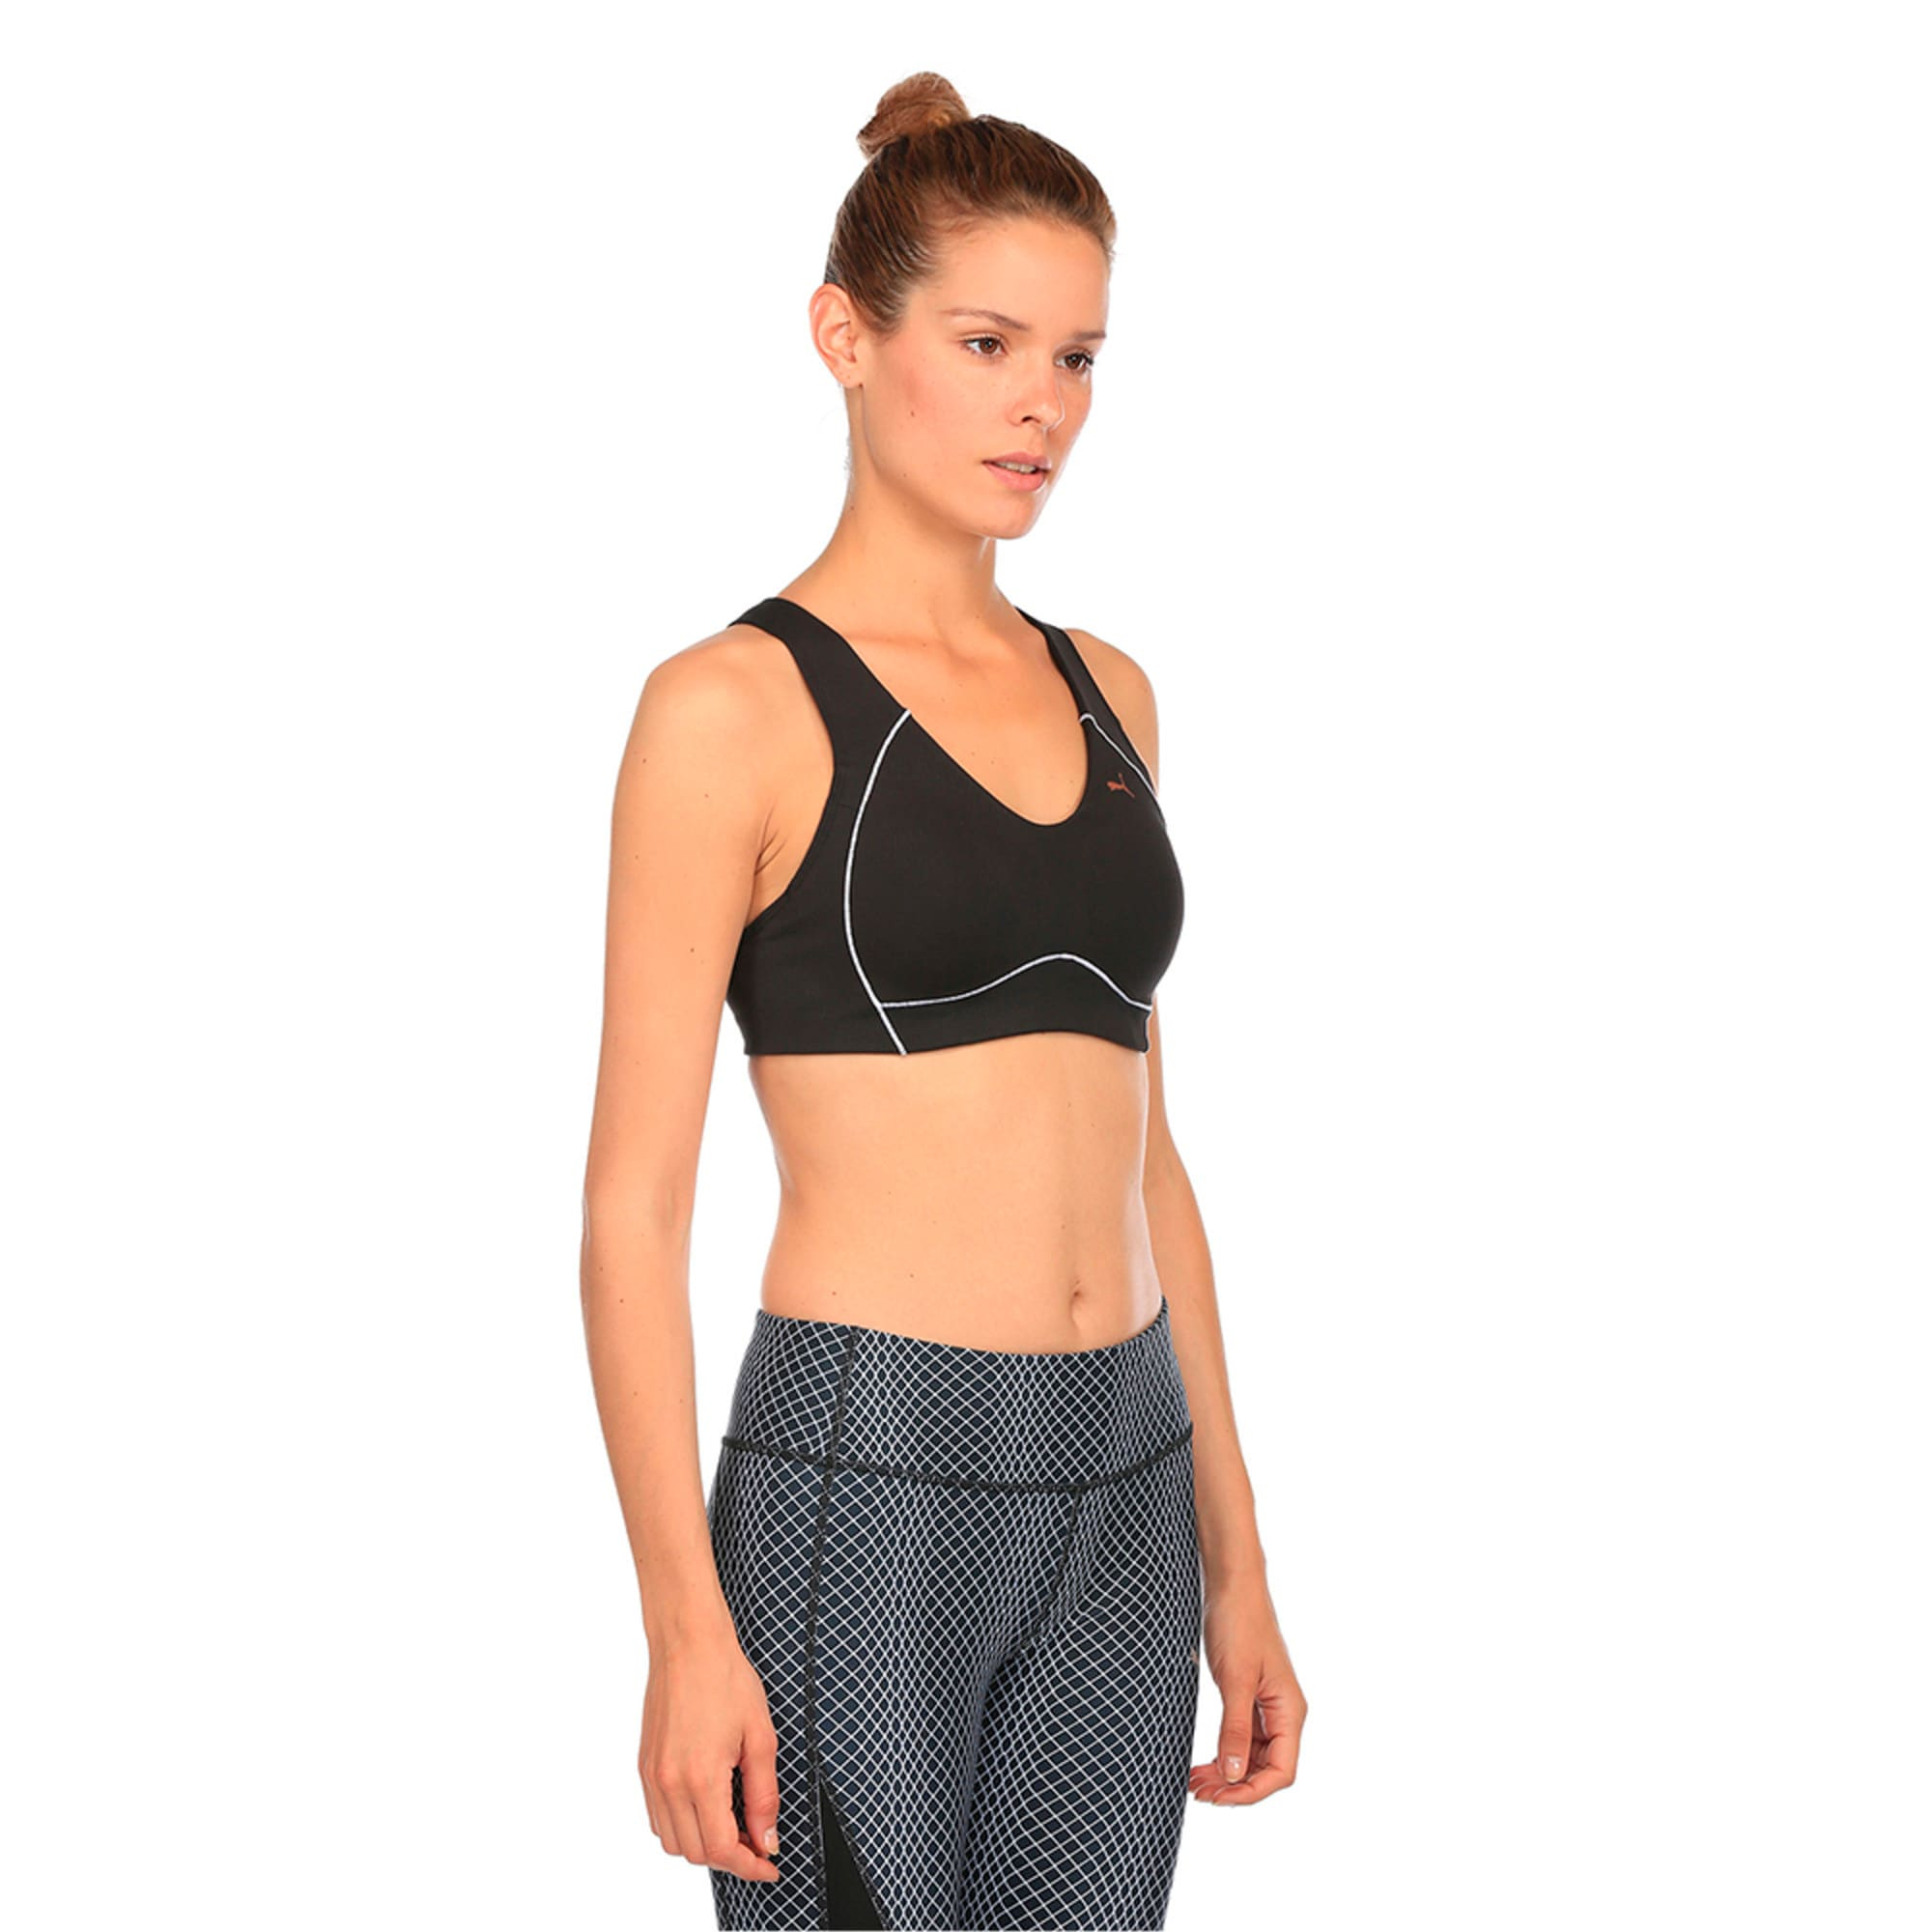 Thumbnail 3 of Training Women's PWRRUN Bra Top, Puma Black, medium-IND